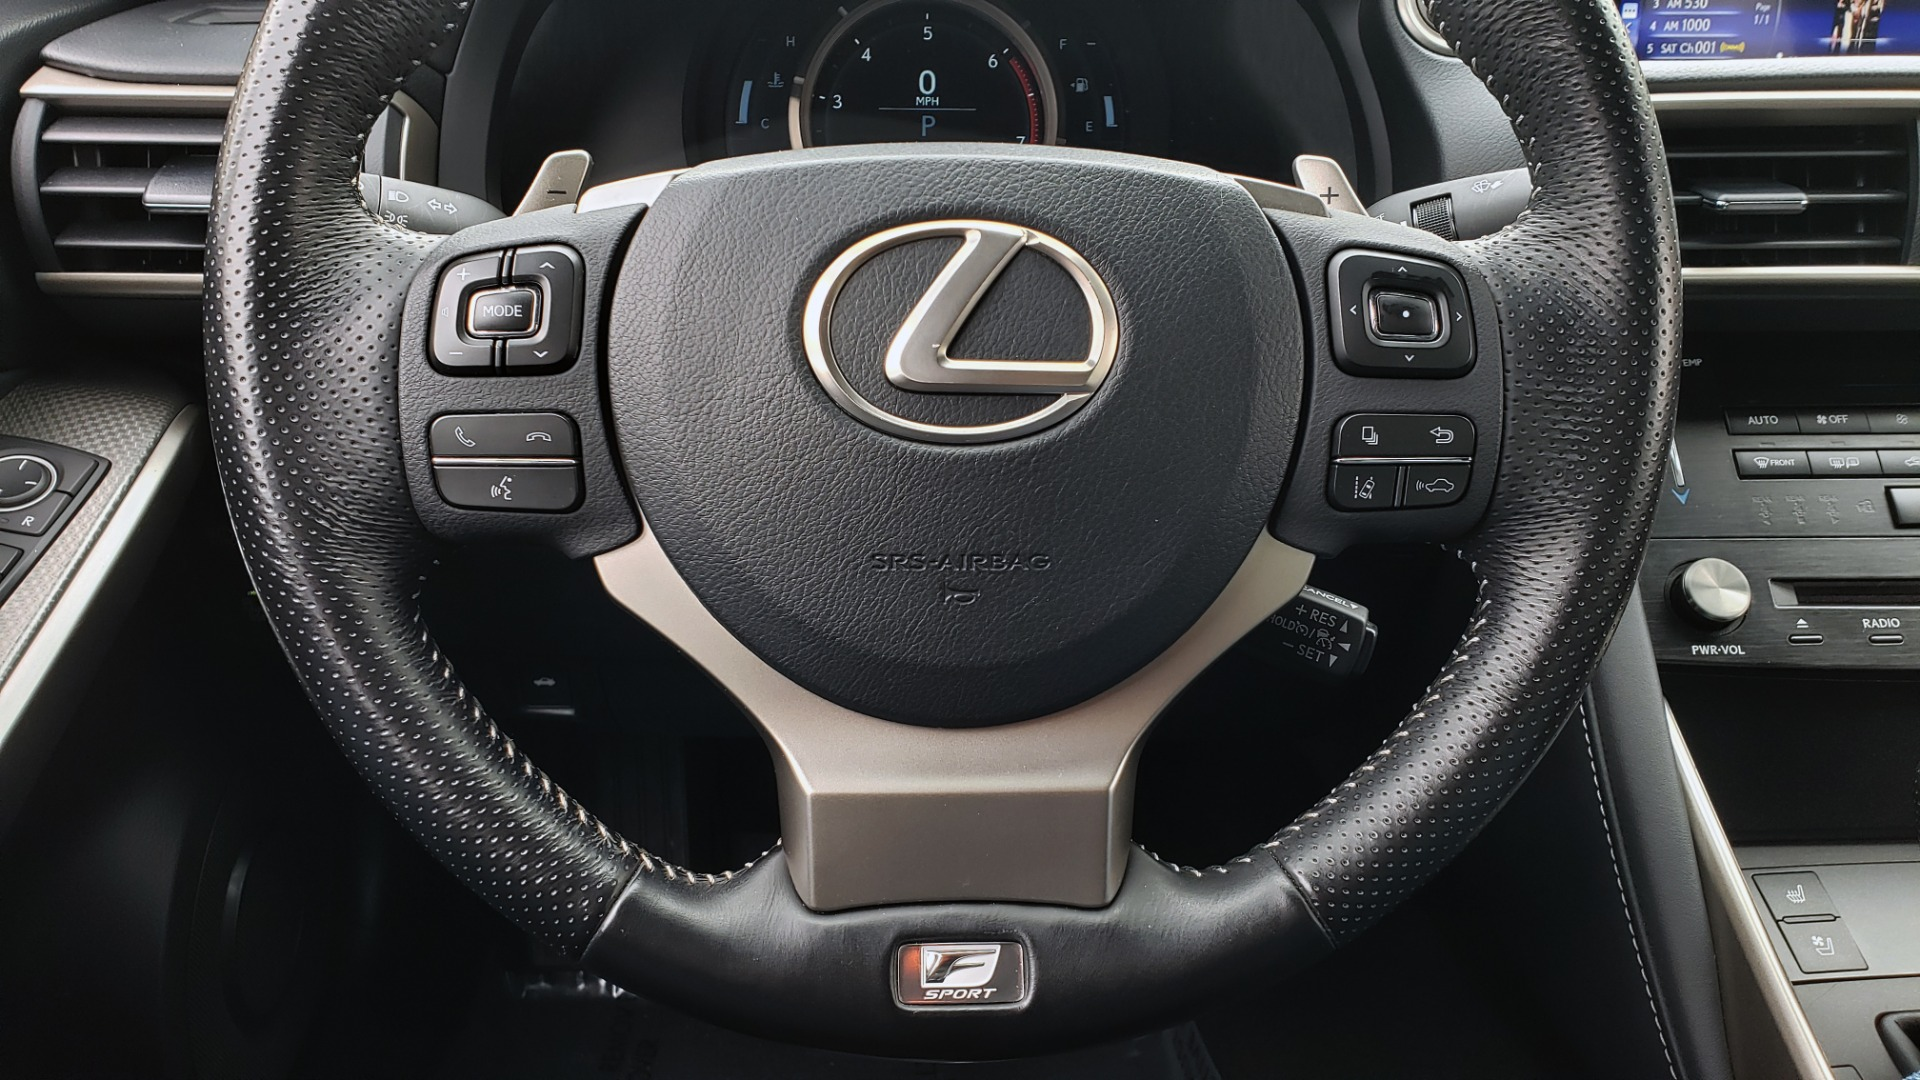 Used 2017 Lexus IS 200 TURBO F-SPORT / BSM / SUNROOF / VENT SEATS / REARVIEW for sale Sold at Formula Imports in Charlotte NC 28227 45